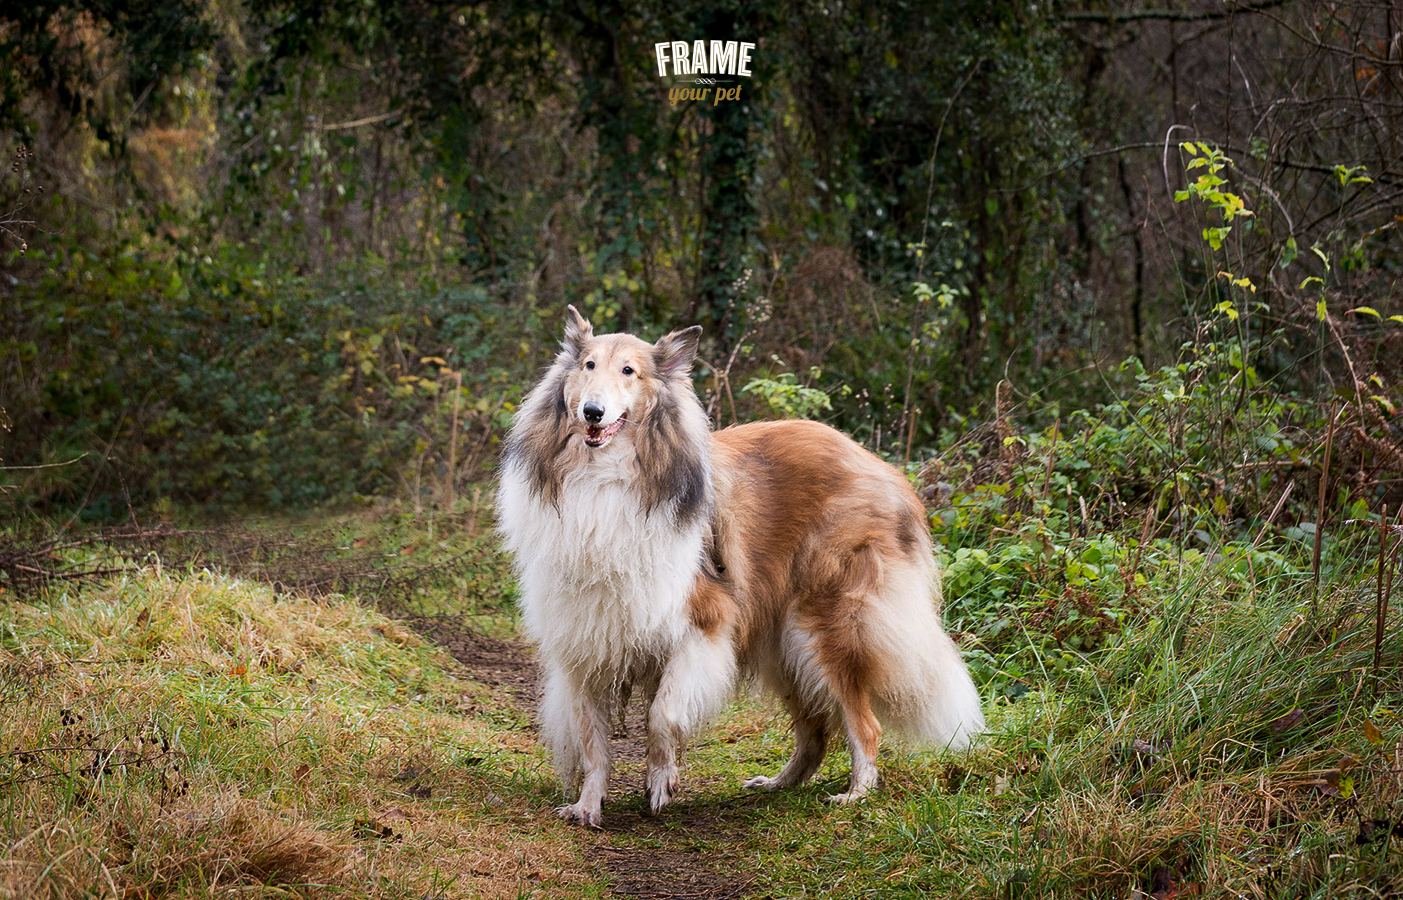 There we go! Vincent again. But I have to admit it... He is a very handsome collie!